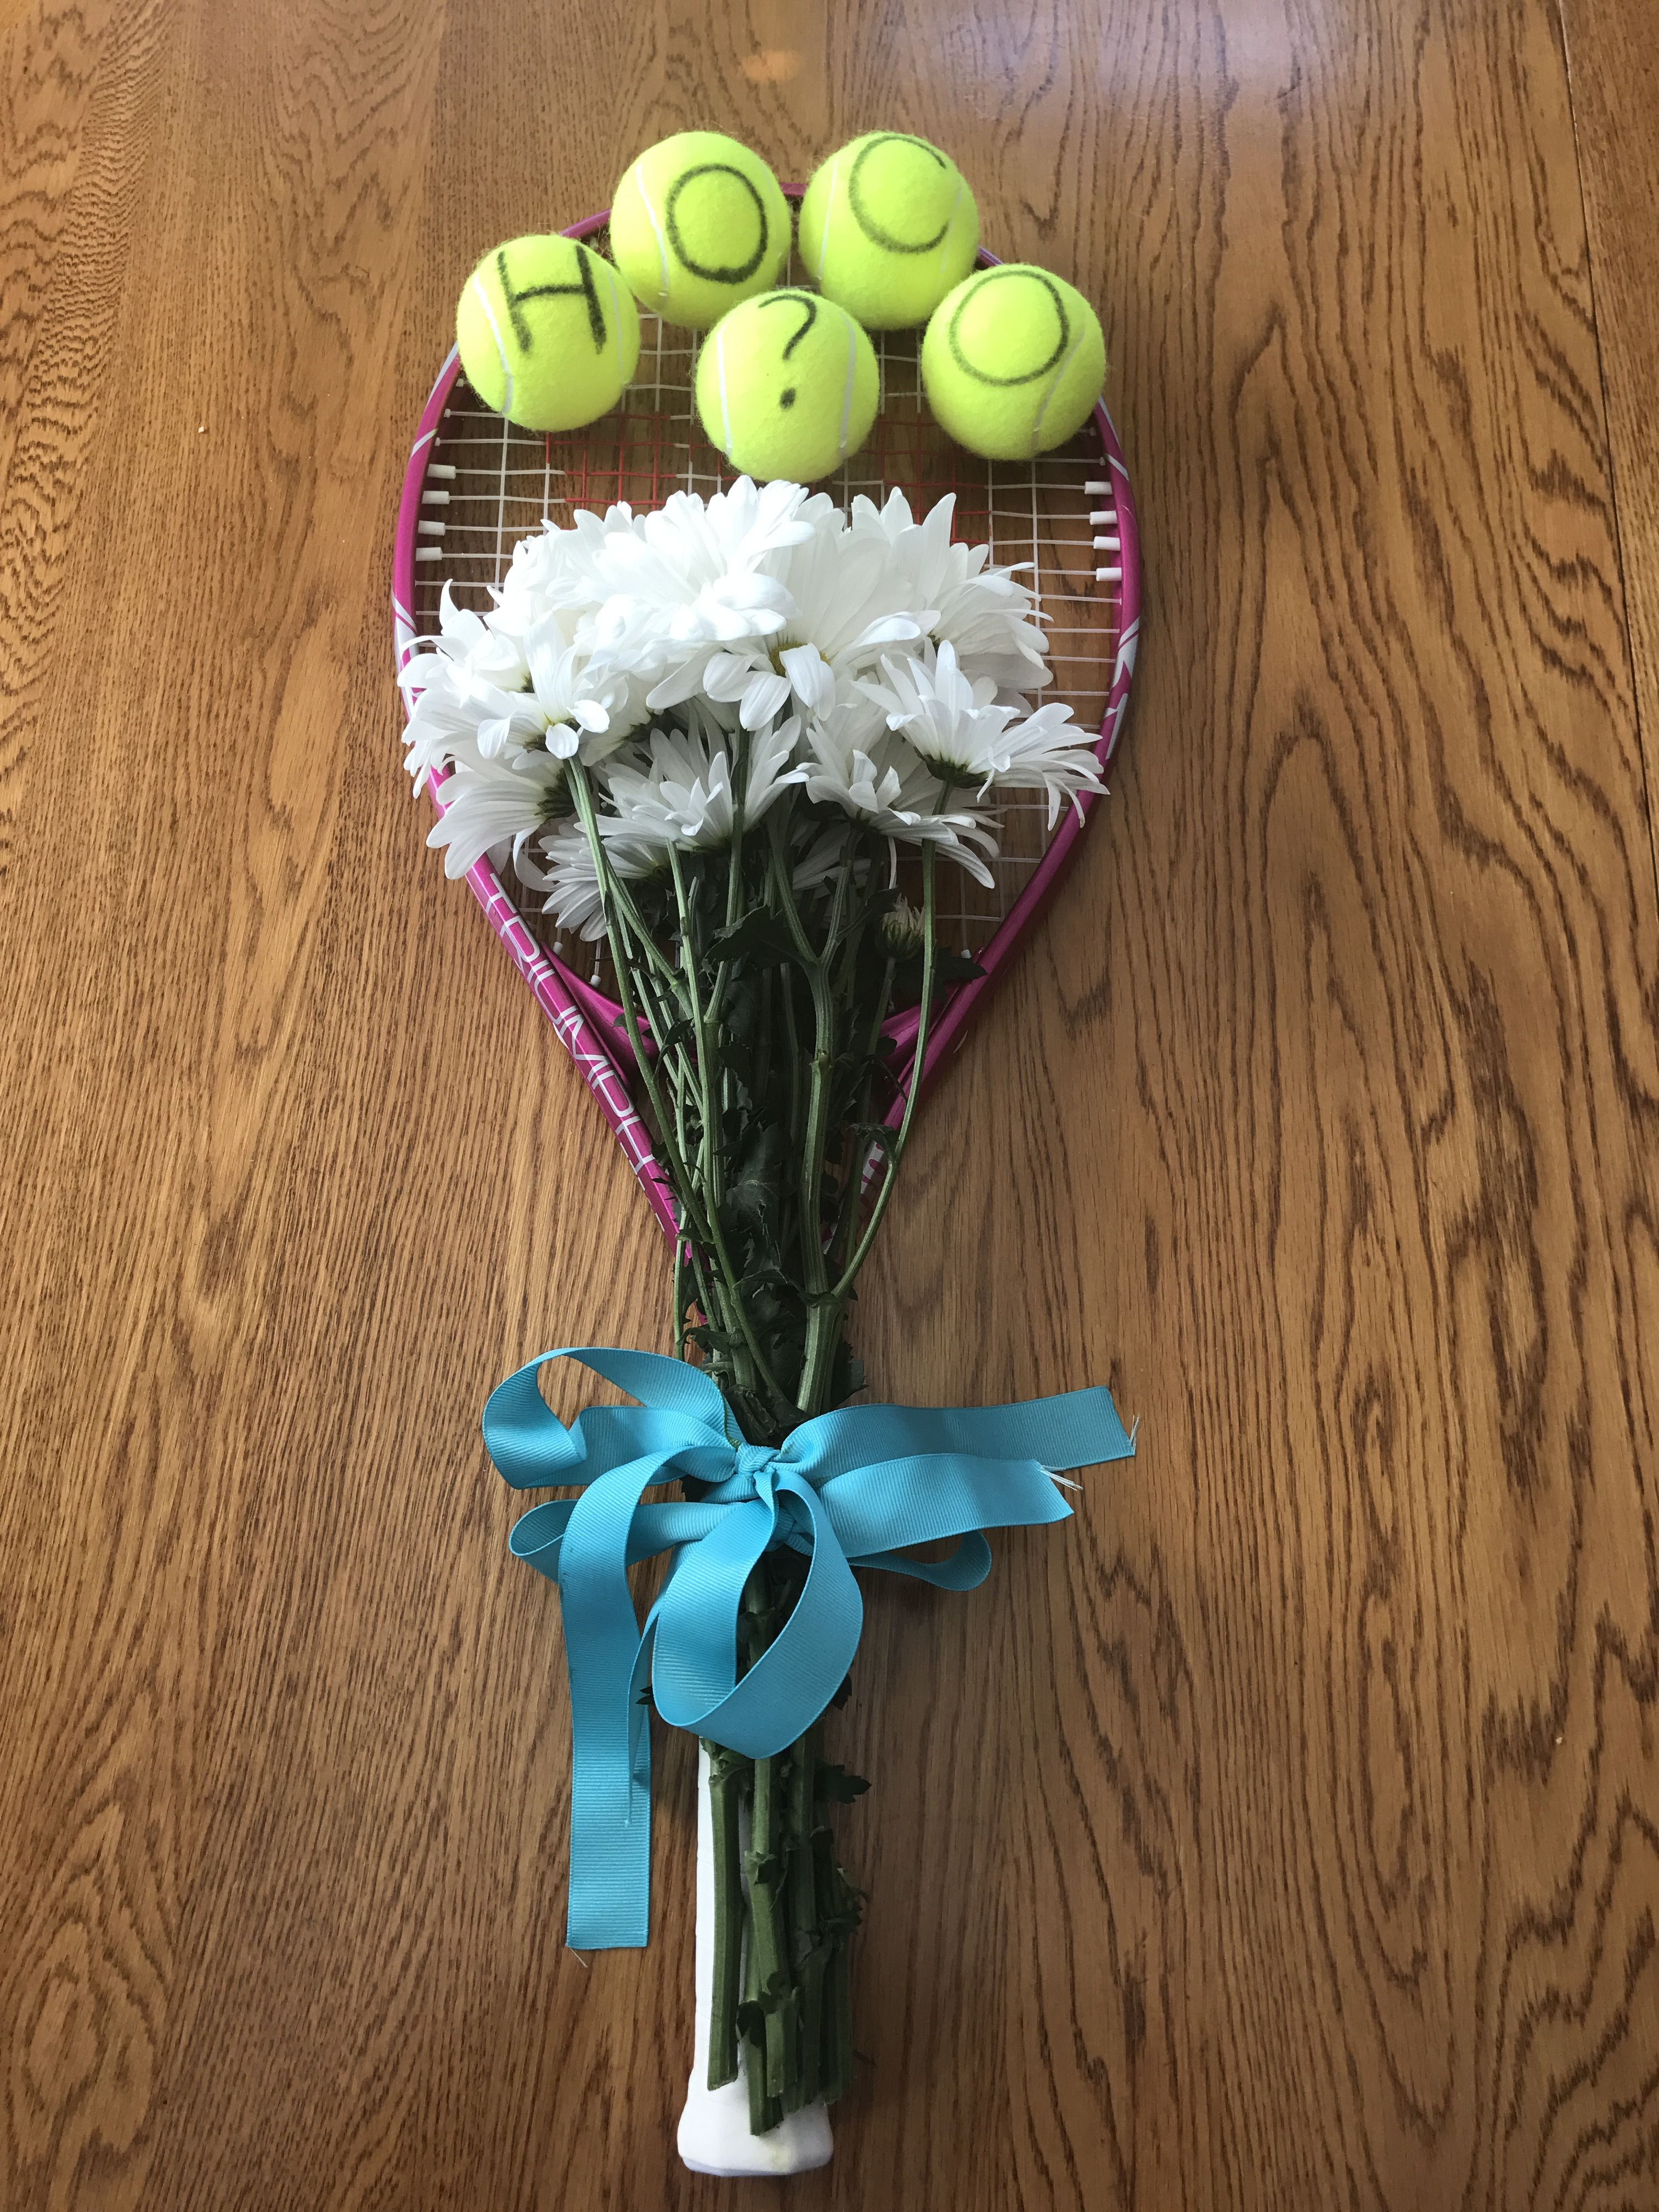 Homecoming Proposal For A Girl Who Plays Tennis Homecoming Proposal Cute Homecoming Proposals Hoco Proposals